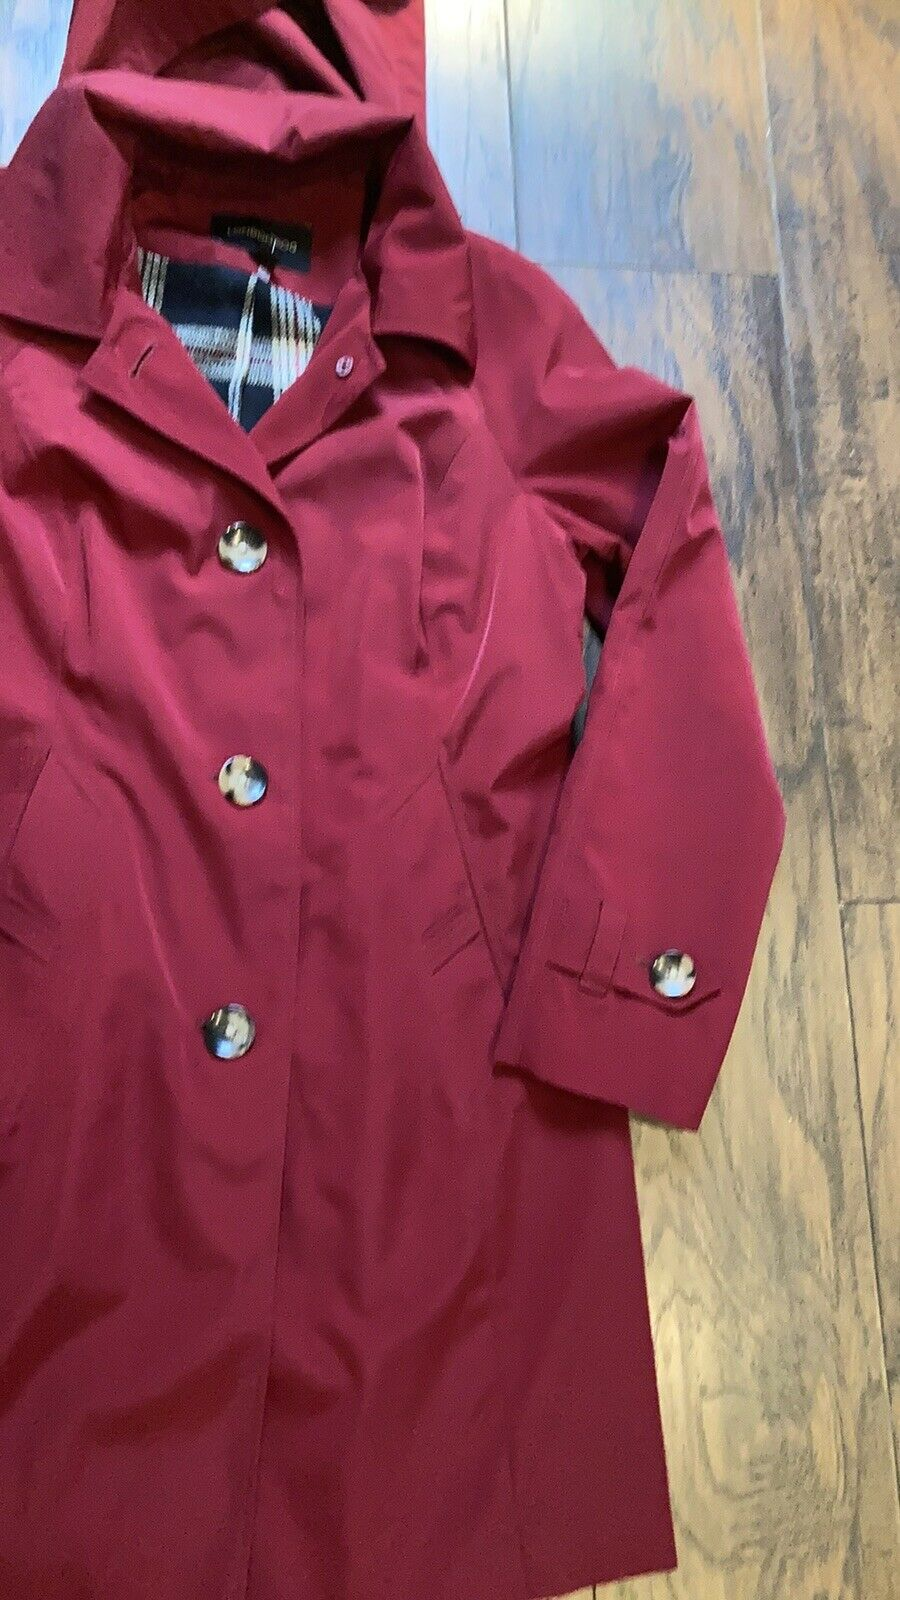 London Fog Red Trench Coat - image 2